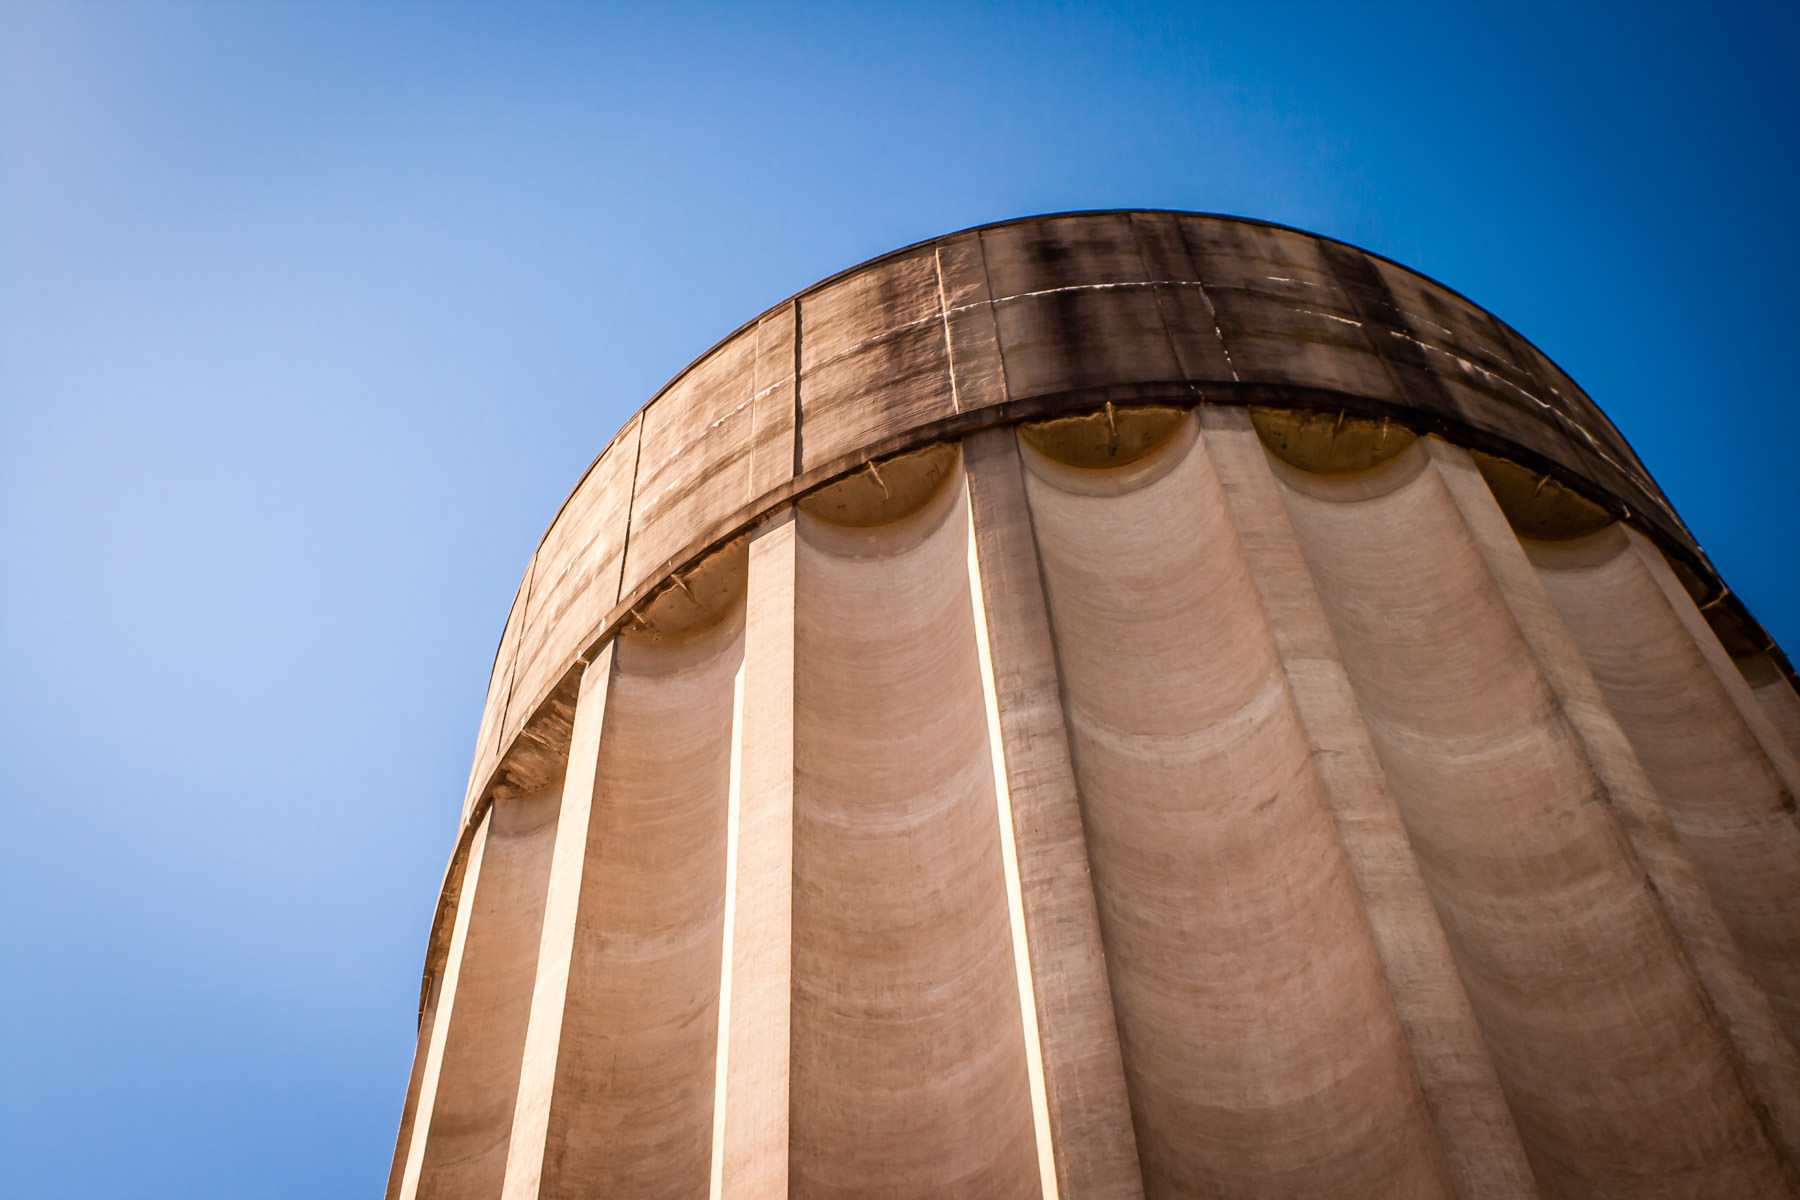 Detail of the top of a large concrete water tower in Tyler, Texas. Purportedly, it is one of the tallest concrete water towers in the world, but very little corroborating information about it can be found on the web.